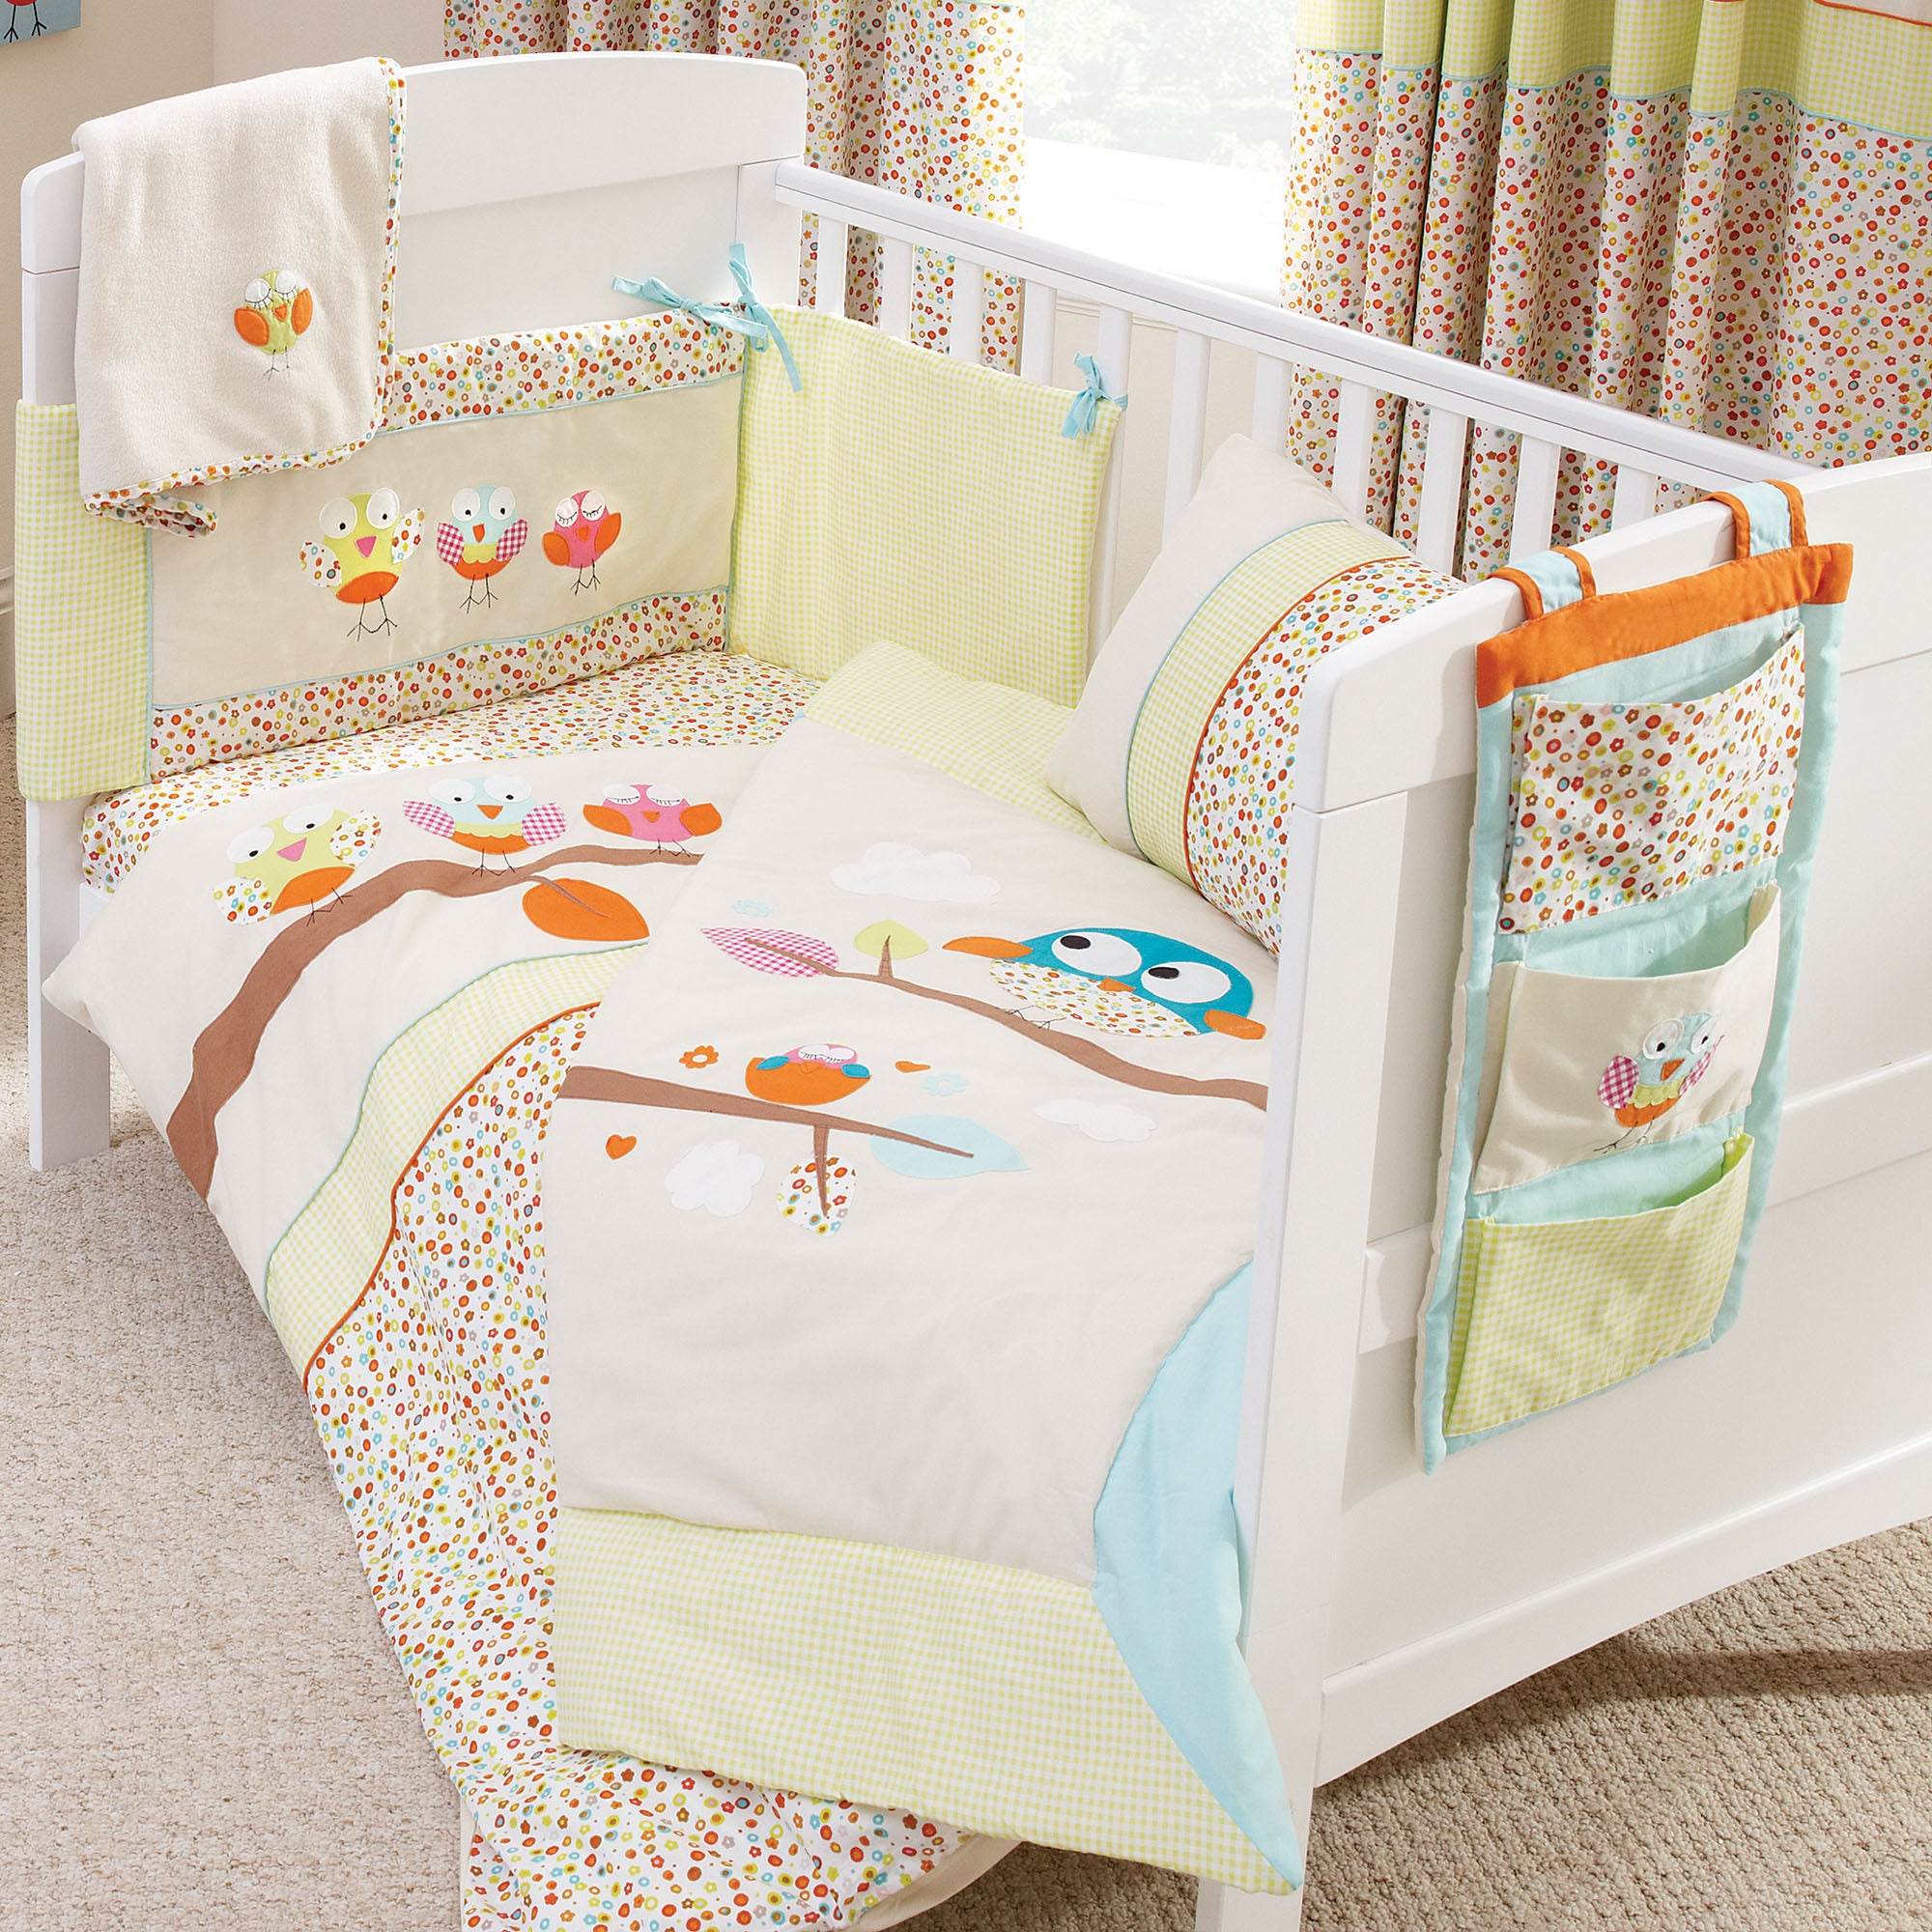 Sleepy Owl Bedlinen Collection